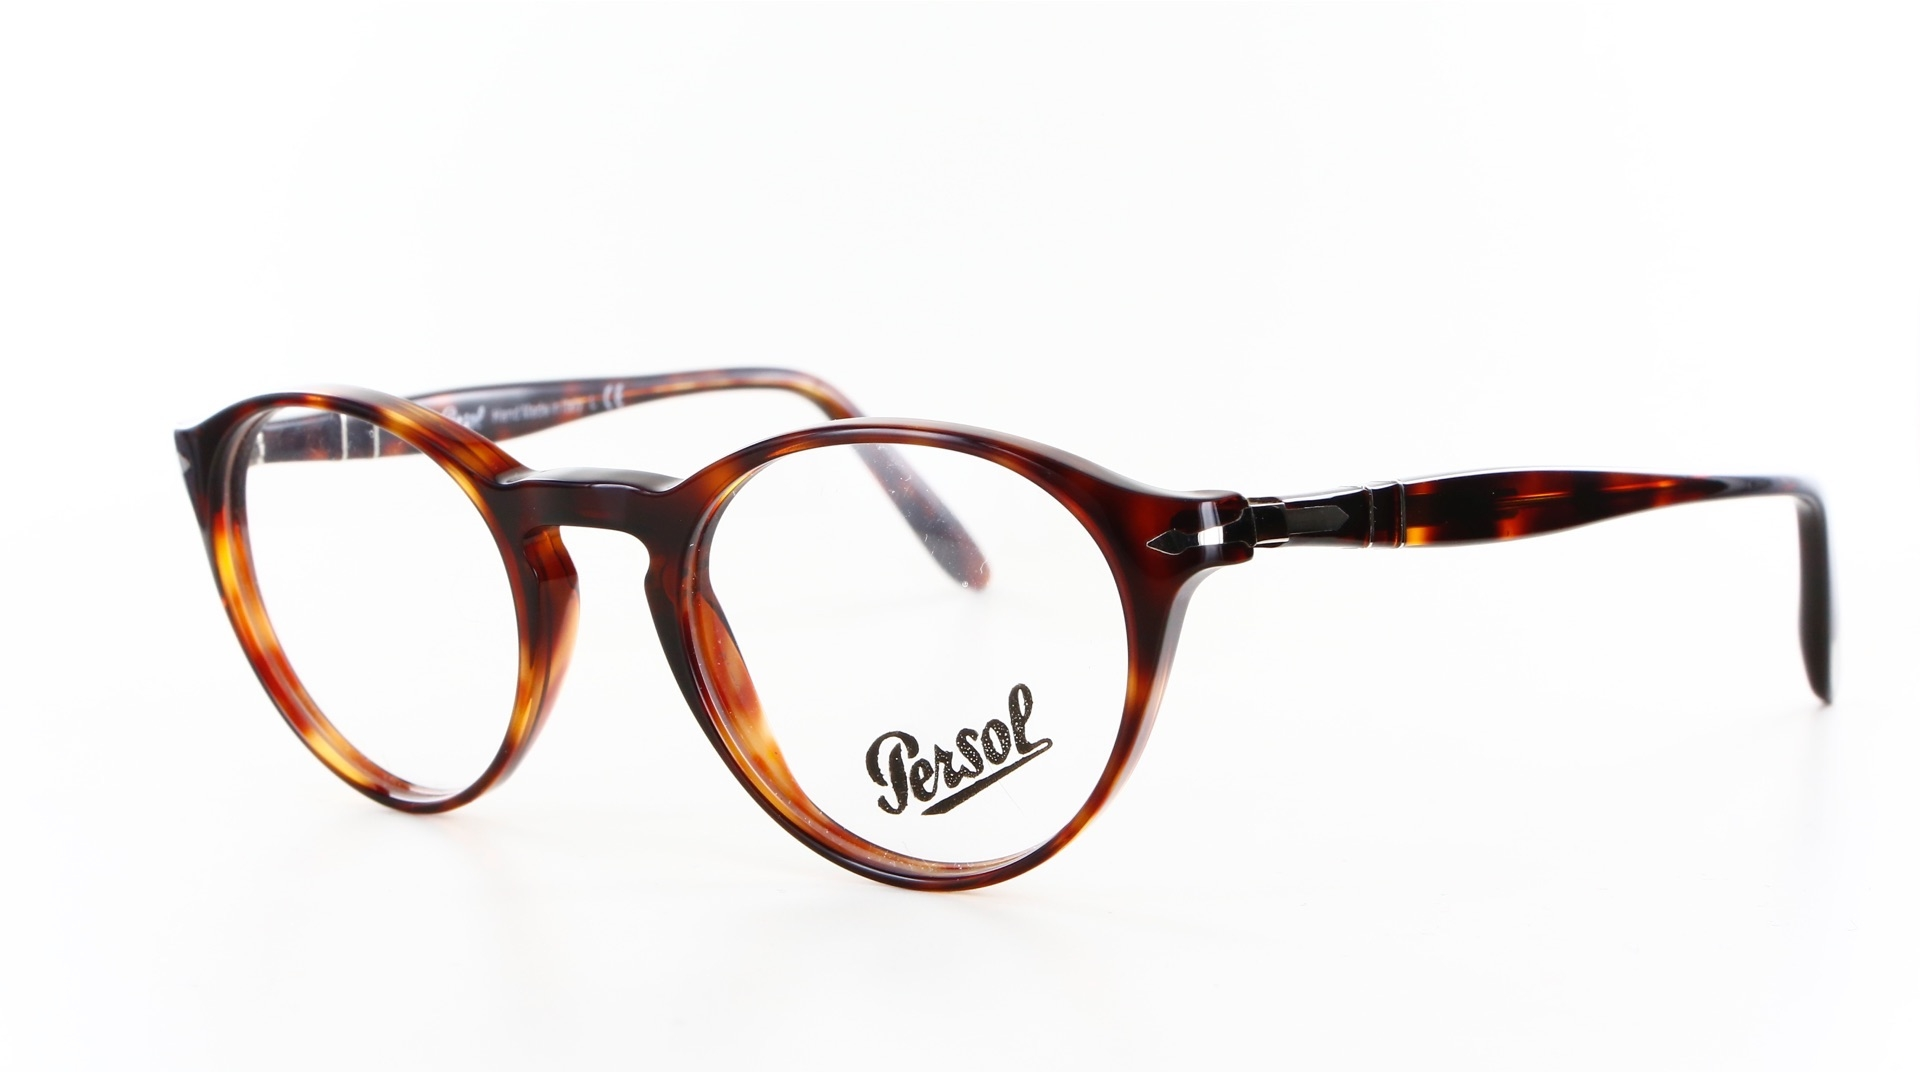 Persol - ref: 77877